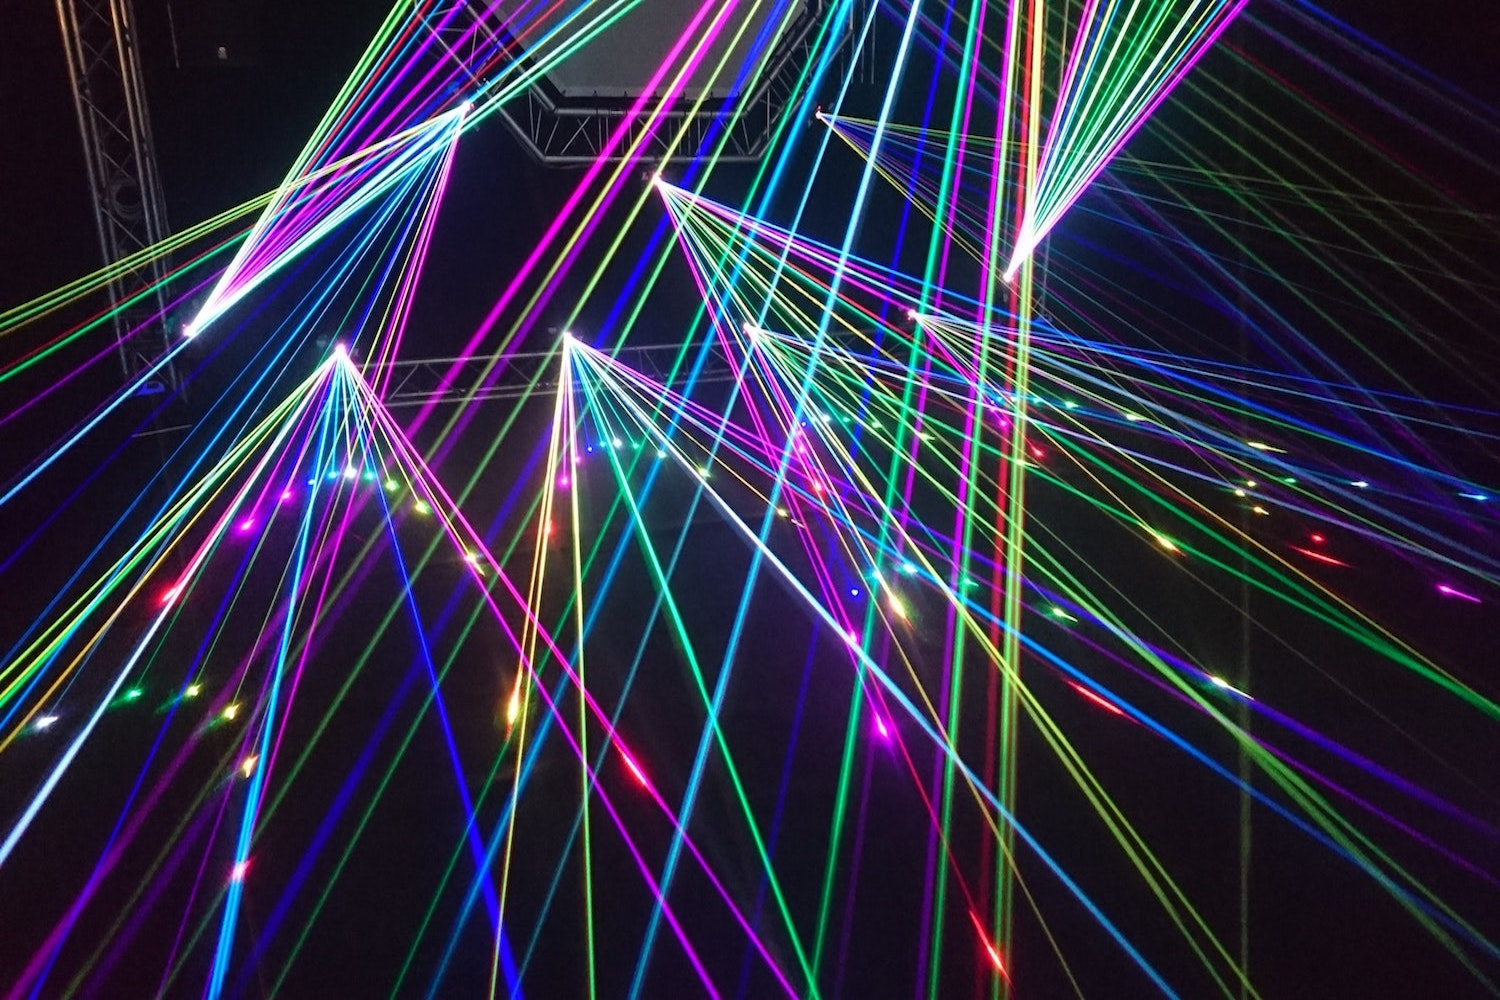 Lighting - Our lighting equipment gives us the ability to create a fun, lively environment that syncs perfectly with the music. You can't disco without some color!